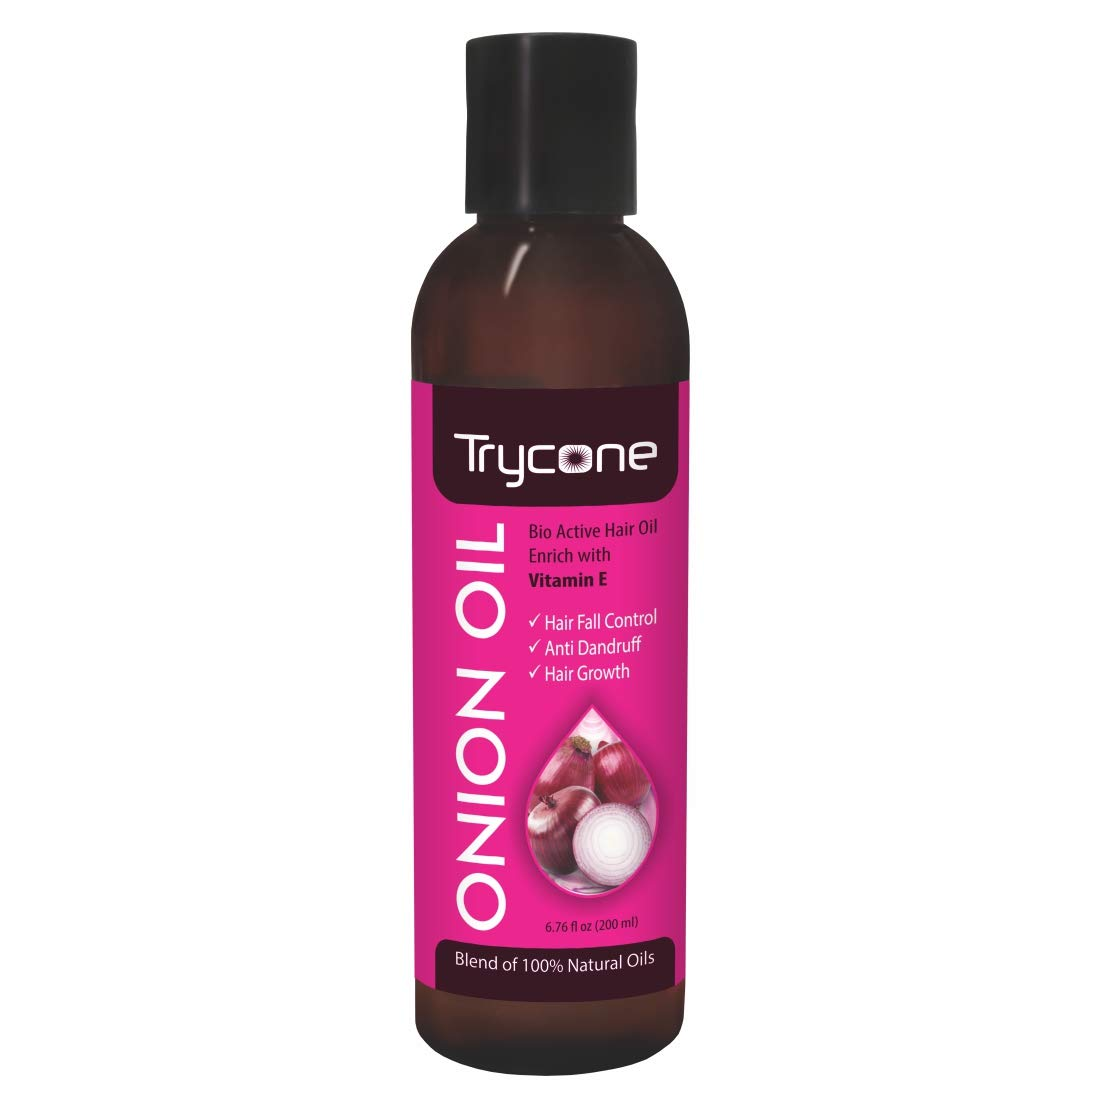 Buy Trycone Onion Hair Growth Oil with Vitamin E, 100% Natural